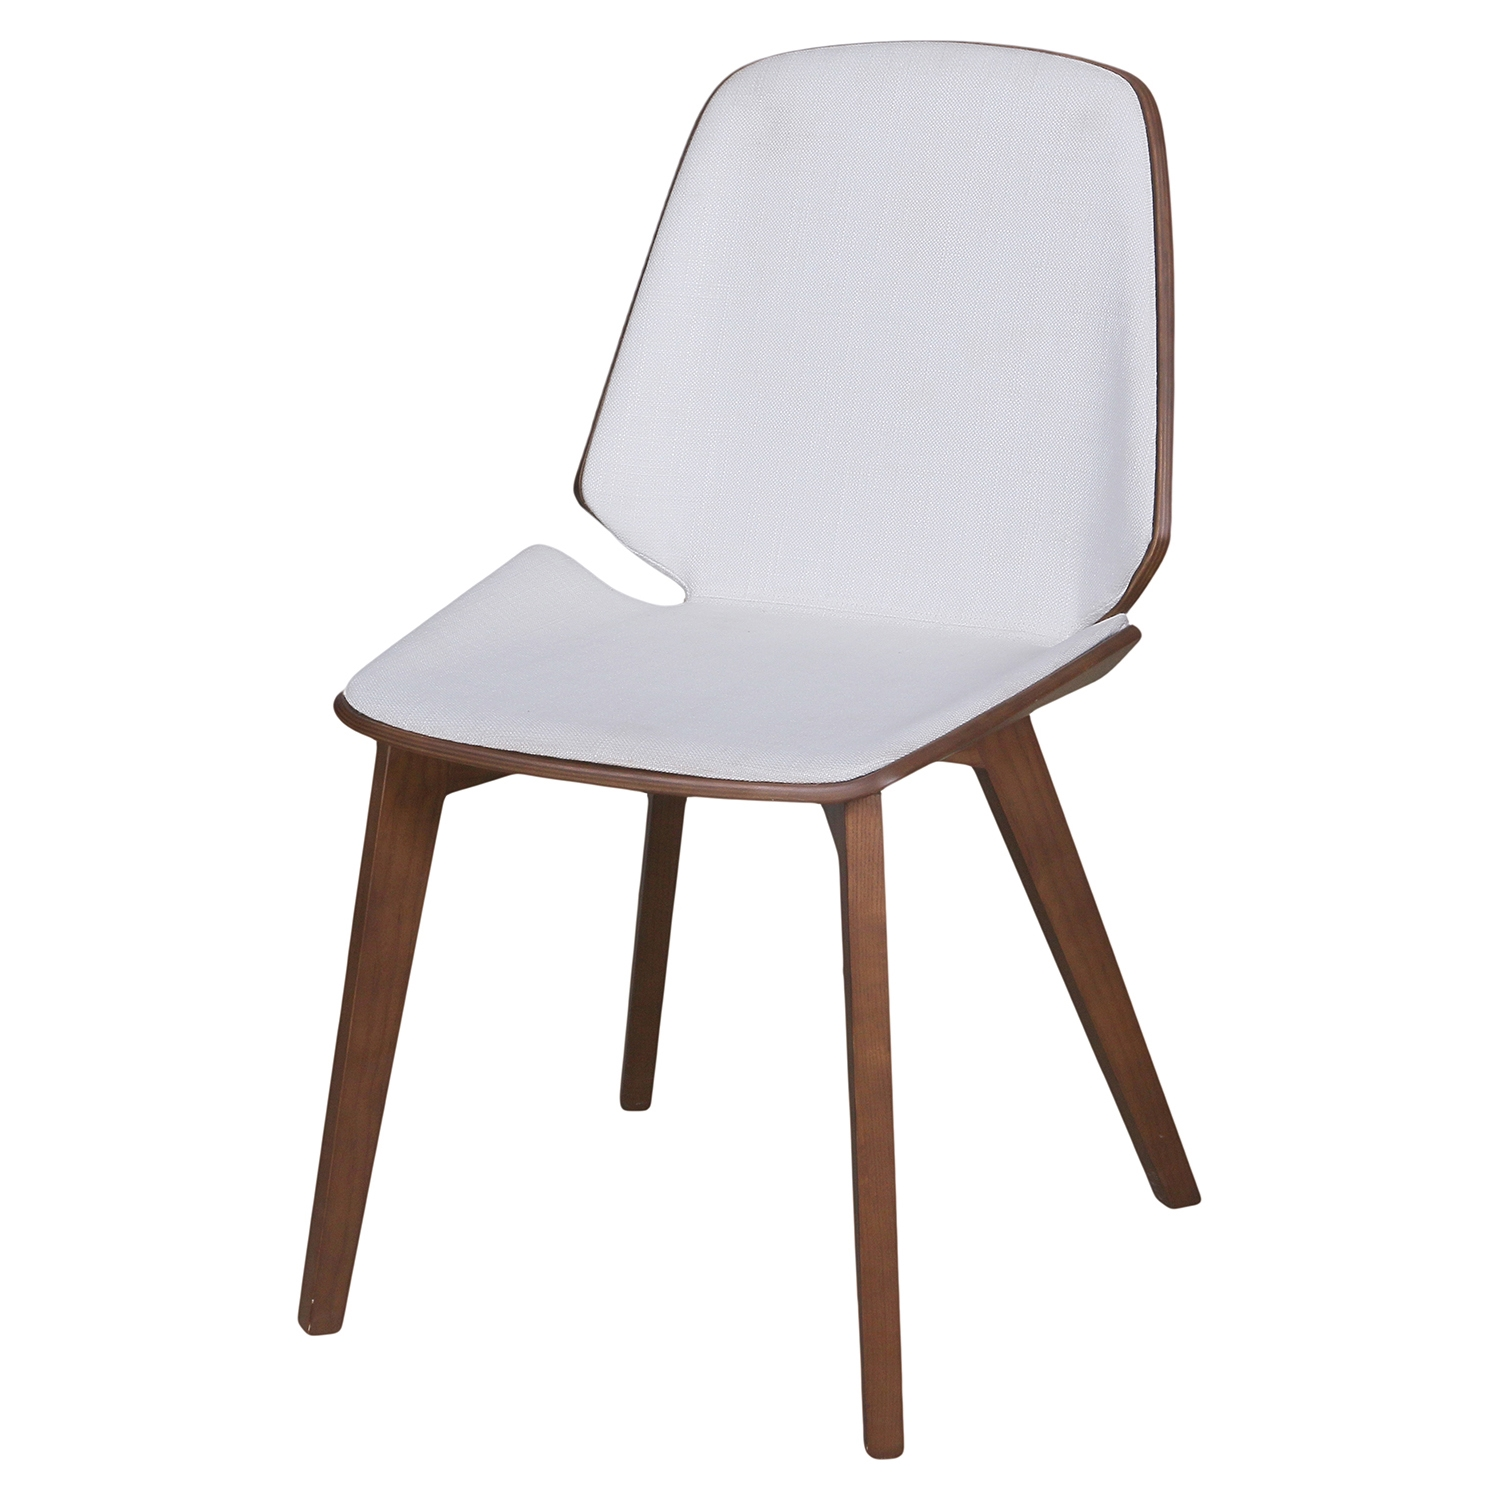 Austin Dining Chair - White (Set of 2) - MOES-CB-1030-18